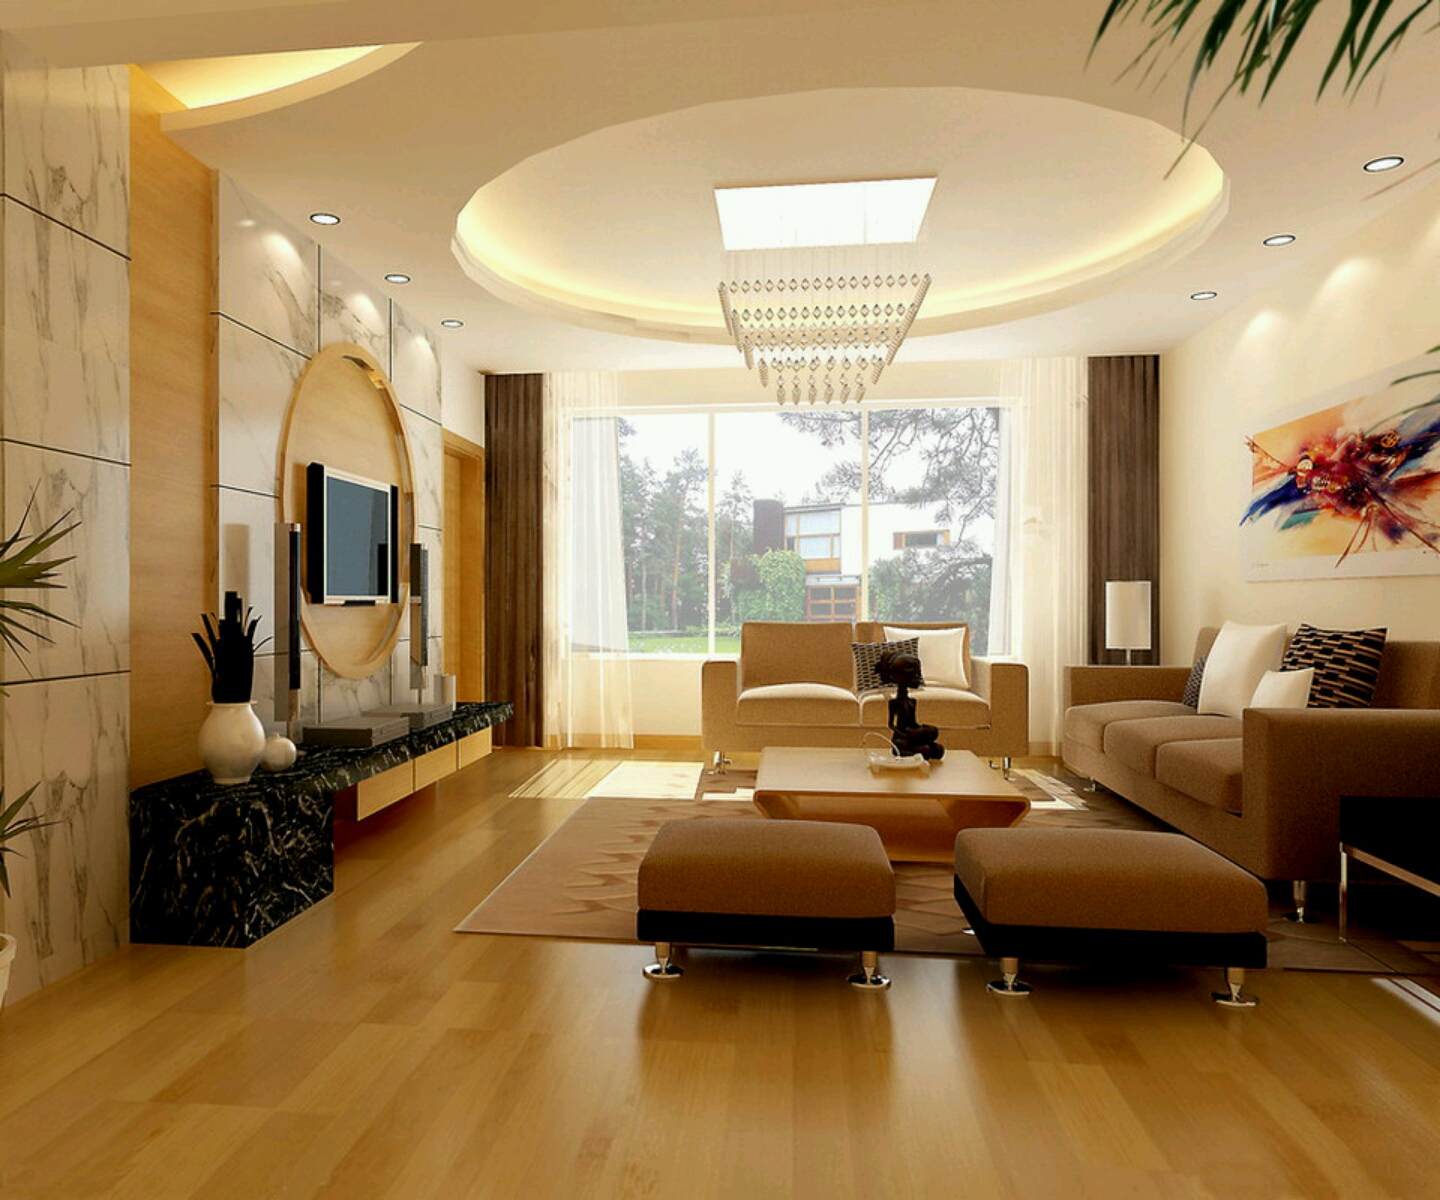 Modern interior decoration living rooms ceiling designs for New house decorating ideas